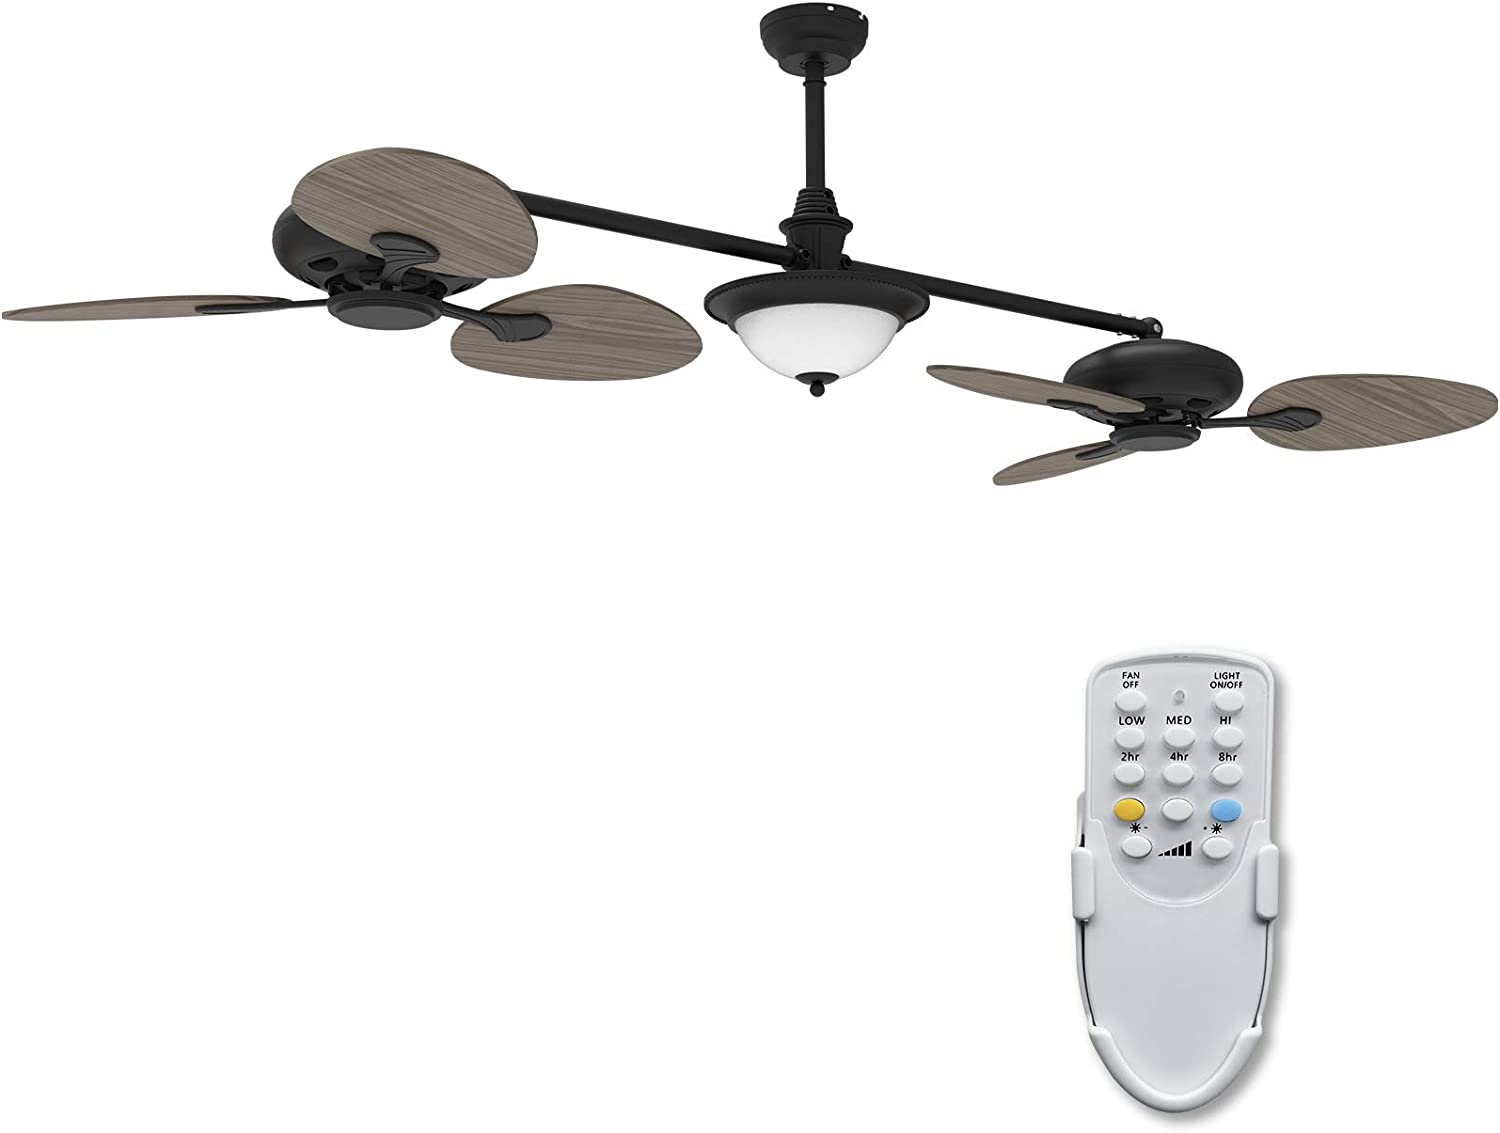 Ovlaim 86 inch Double Ceiling Fan, Oil-rubbed Indoor Ceiling Fan with Light and Remote Control , Dual Ceiling Fan Dimmable 3 color Temperature 6 Blades Wood Angle Ceiling Fan